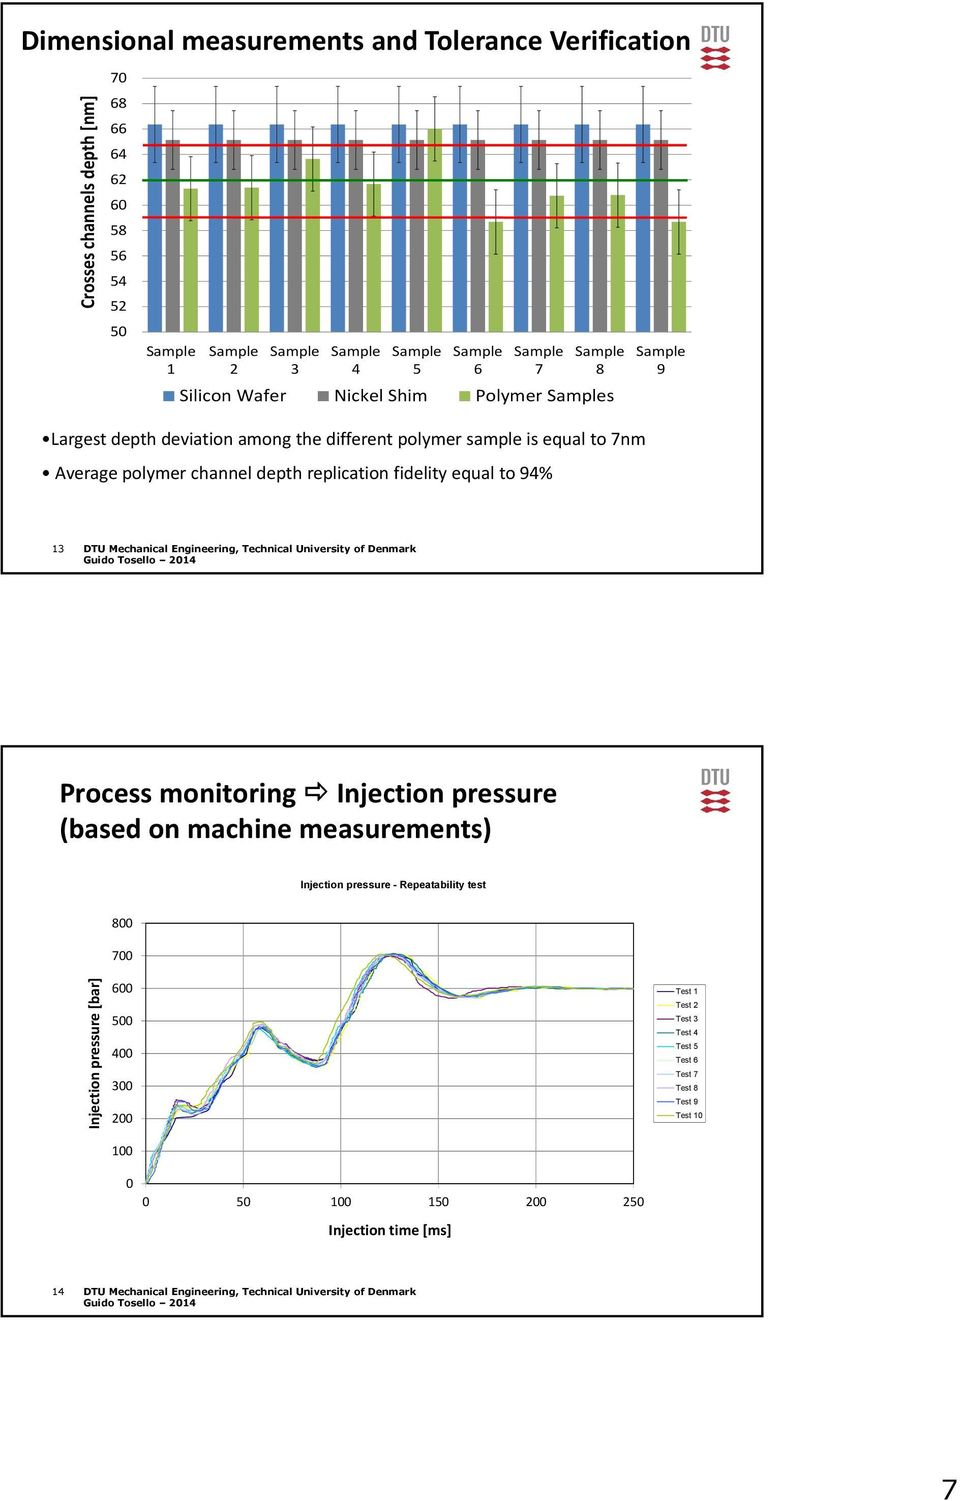 Mechanical Engineering, Technical University of Denmark Process monitoring Injection pressure (based on machine measurements) Injection pressure - Repeatability test 800 700 Injection pressure